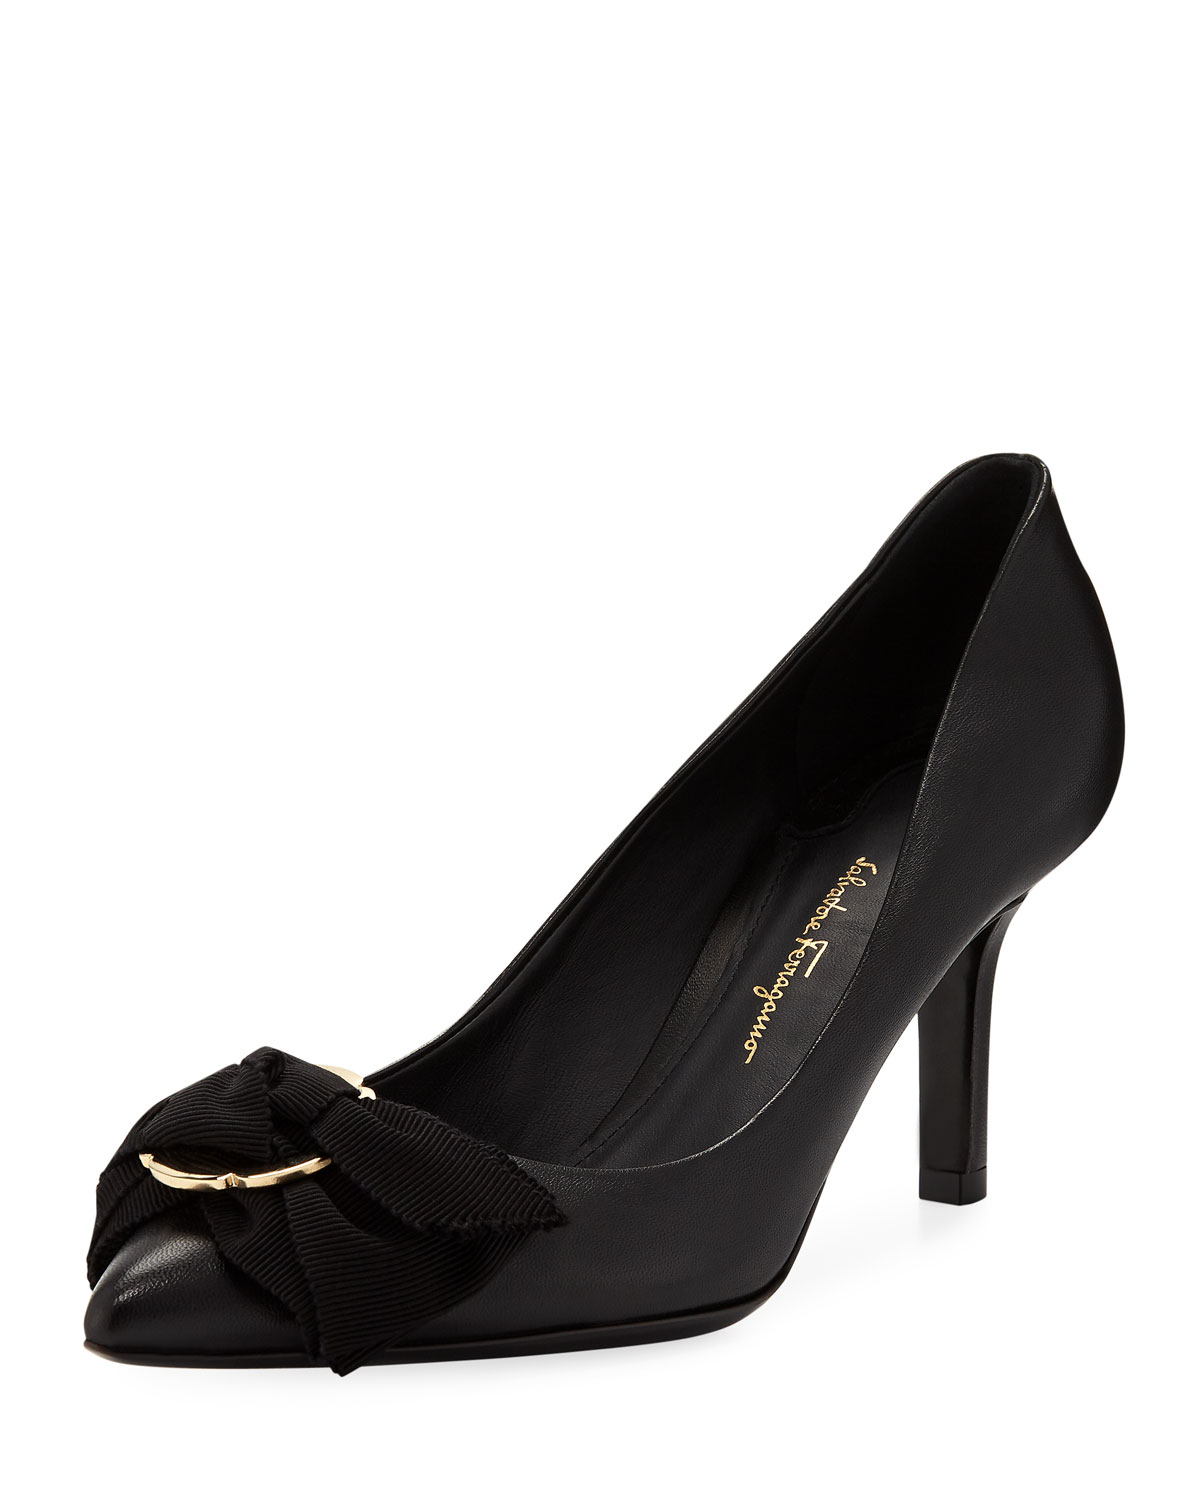 720f04f1d9f Salvatore Ferragamo Talla Mid-Heel Pumps with Bow